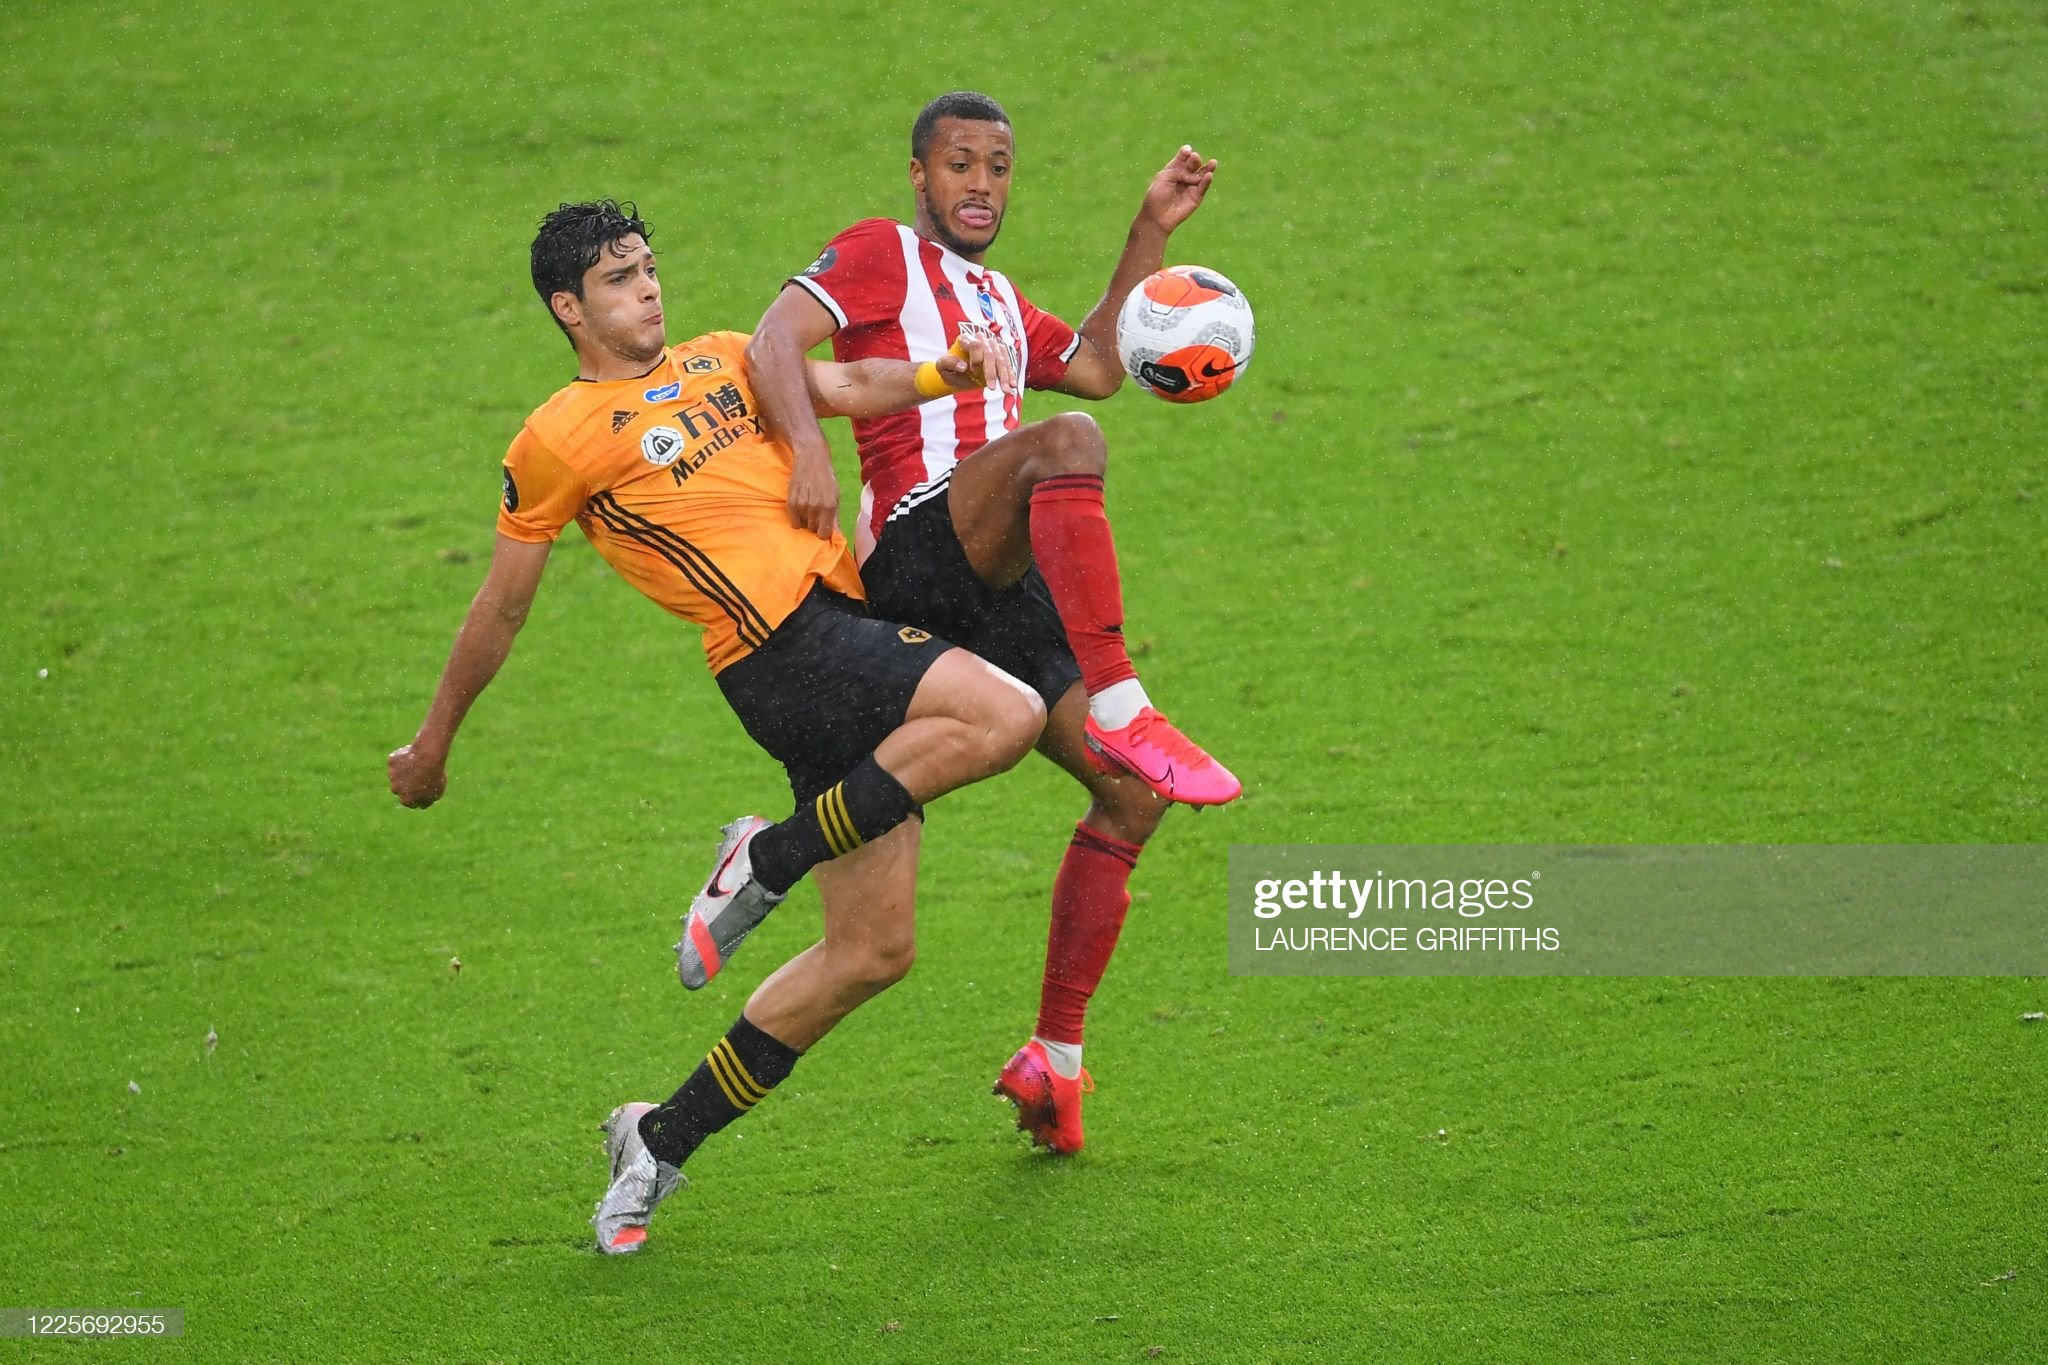 Sheffield United vs Wolves preview, prediction and odds